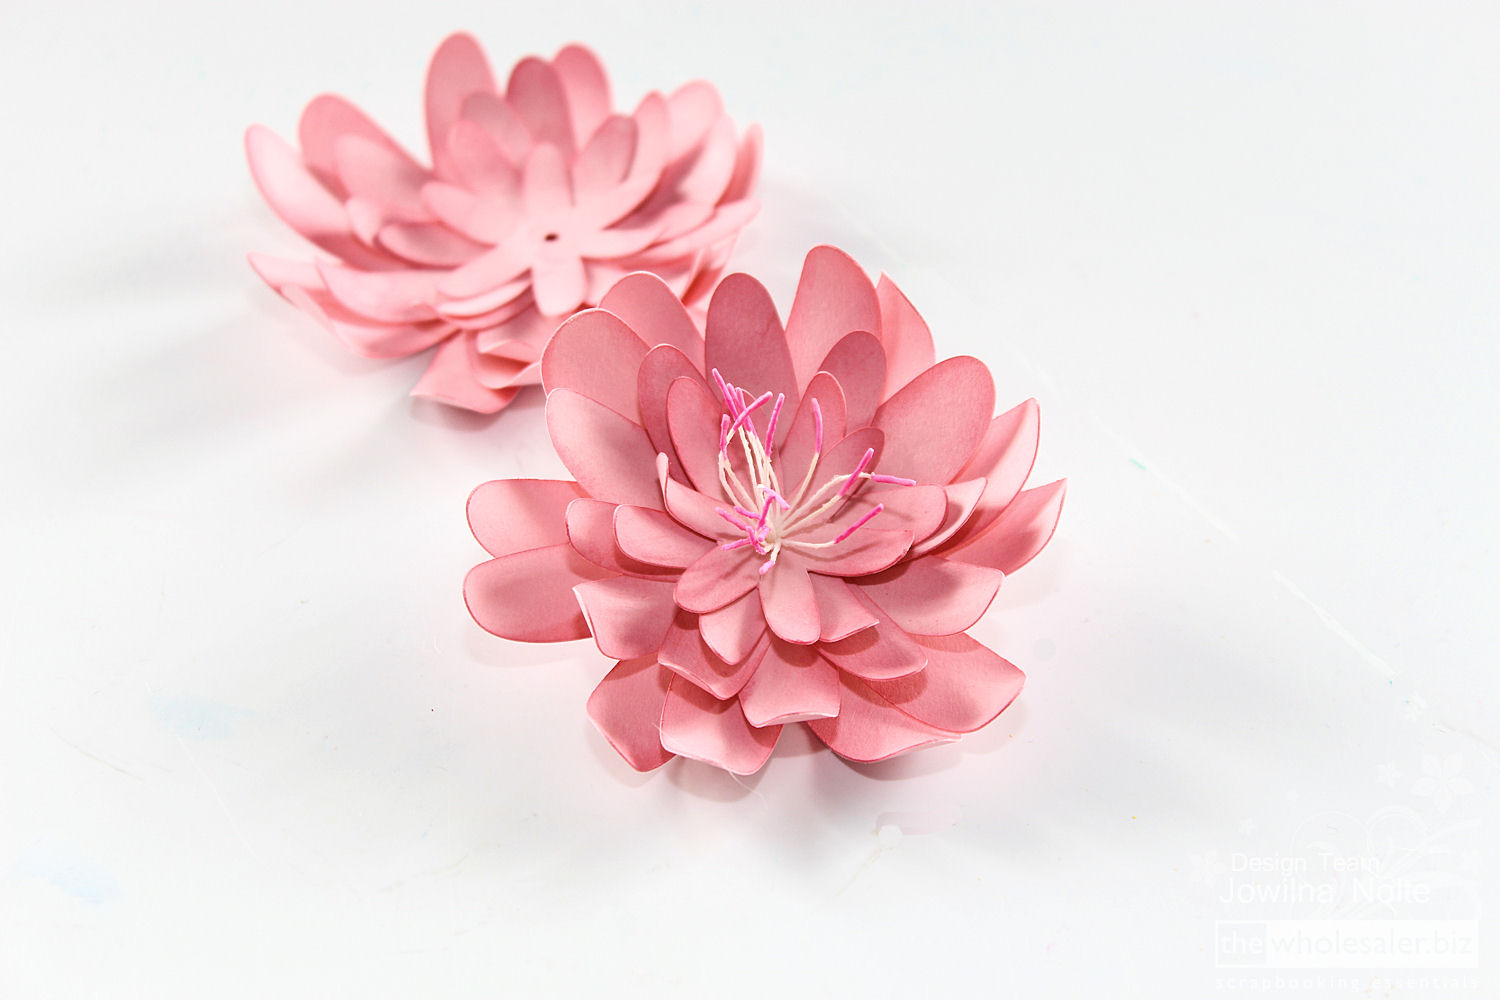 Making 3D flowers - Step 2